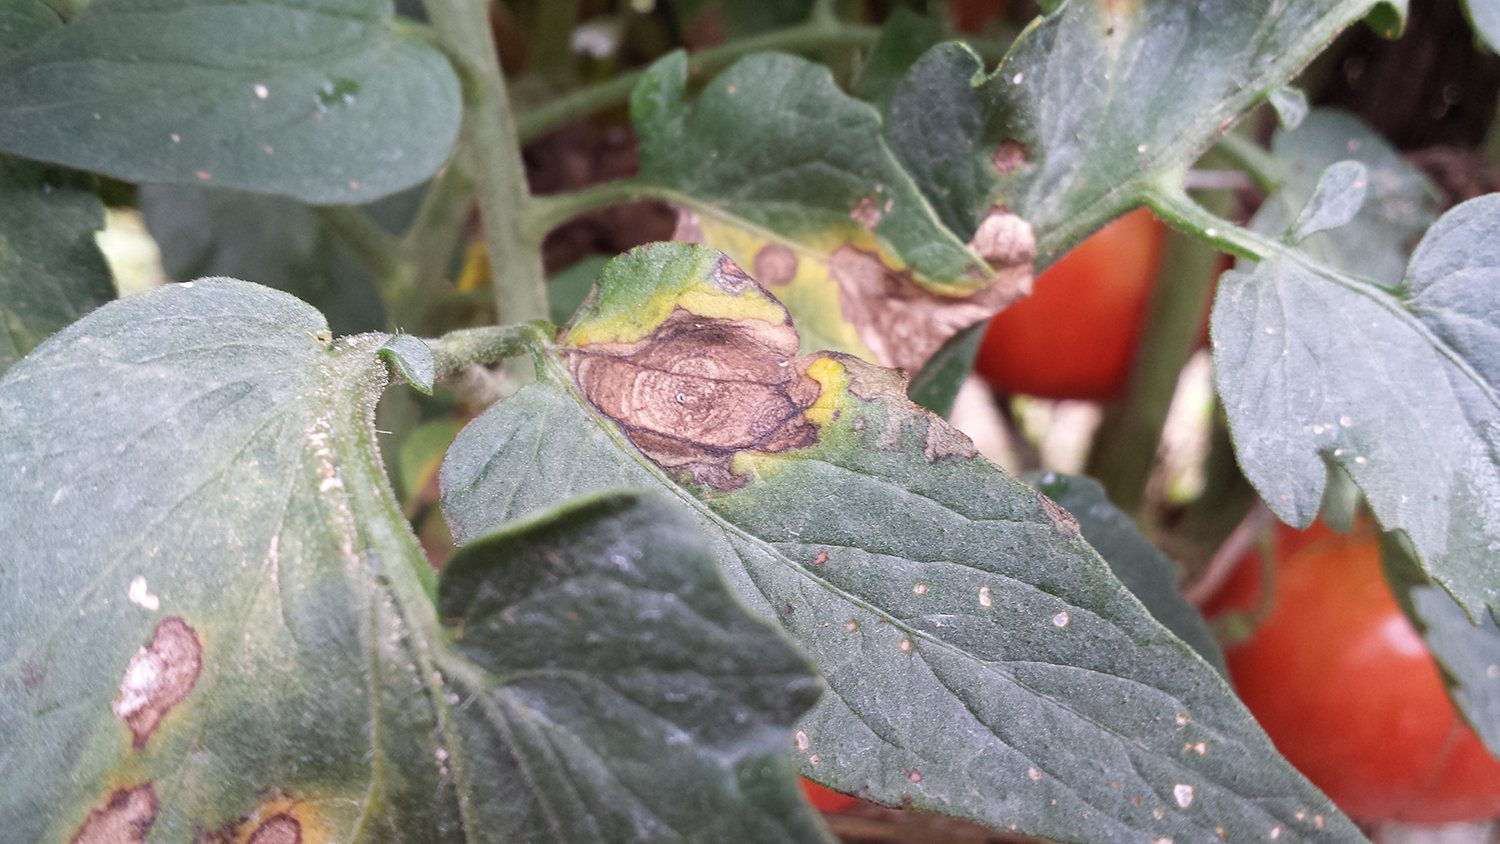 Vegetable Diseases to Scout for: Early Blight & Septoria